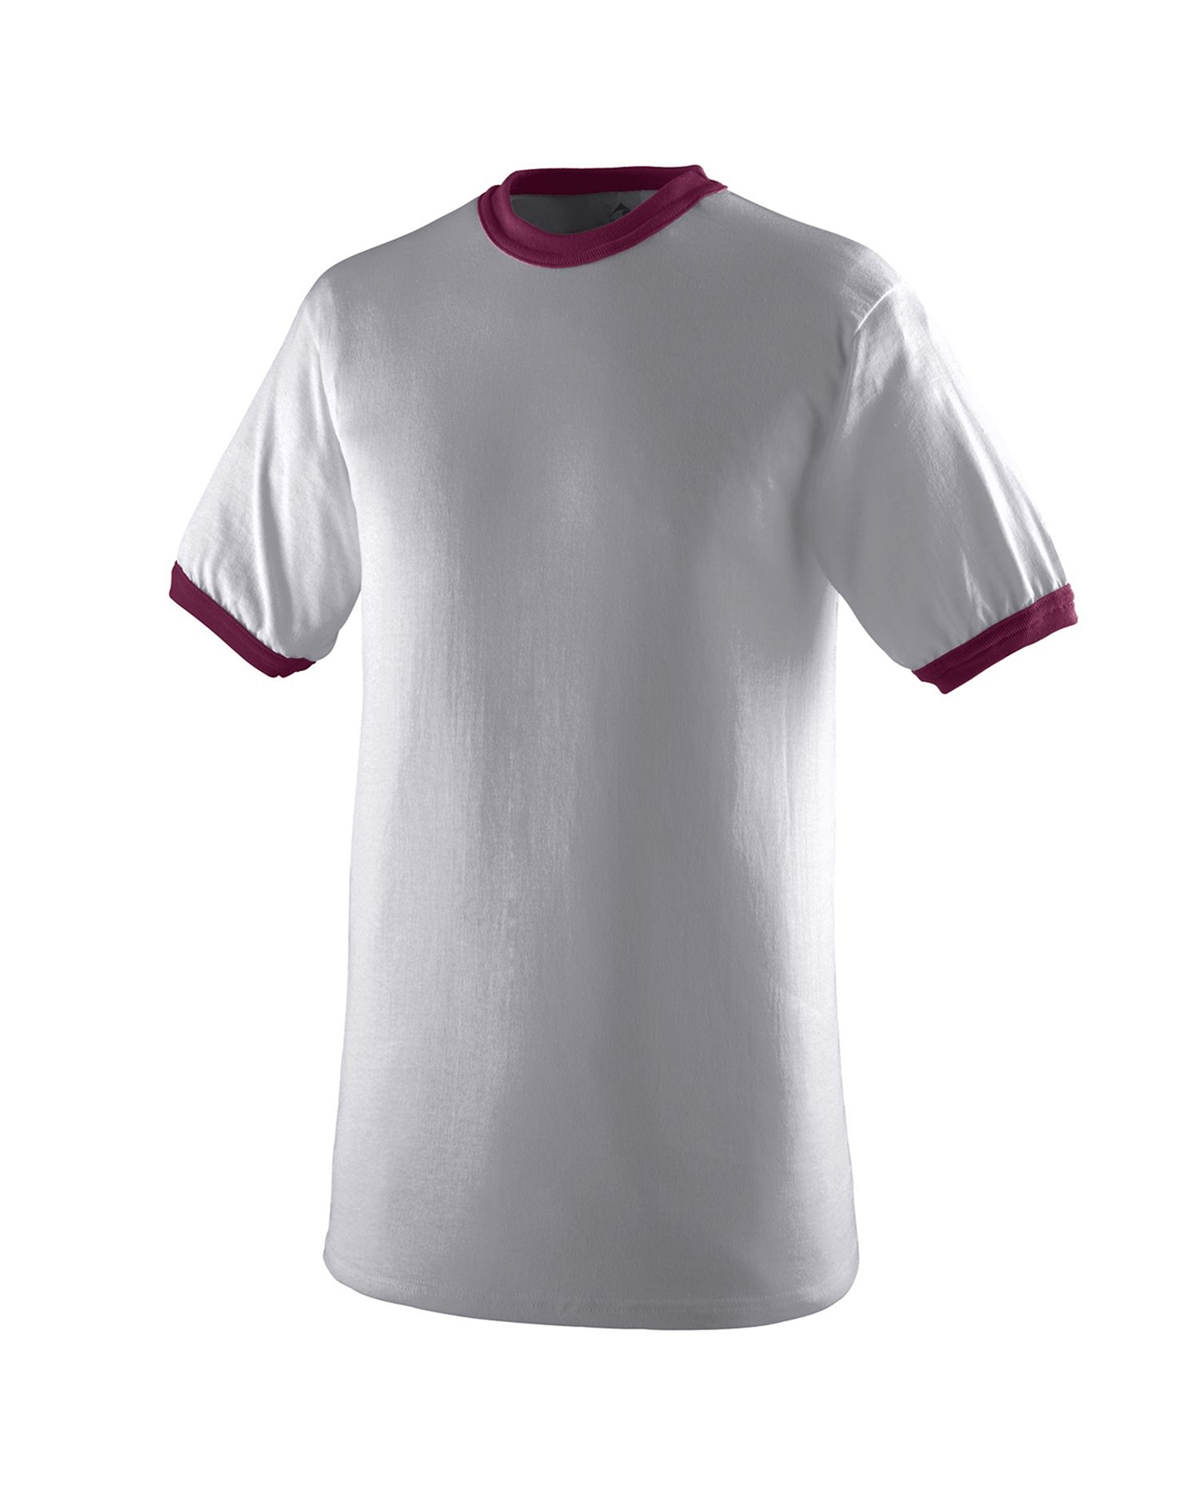 click to view Ath Hthr/Maroon